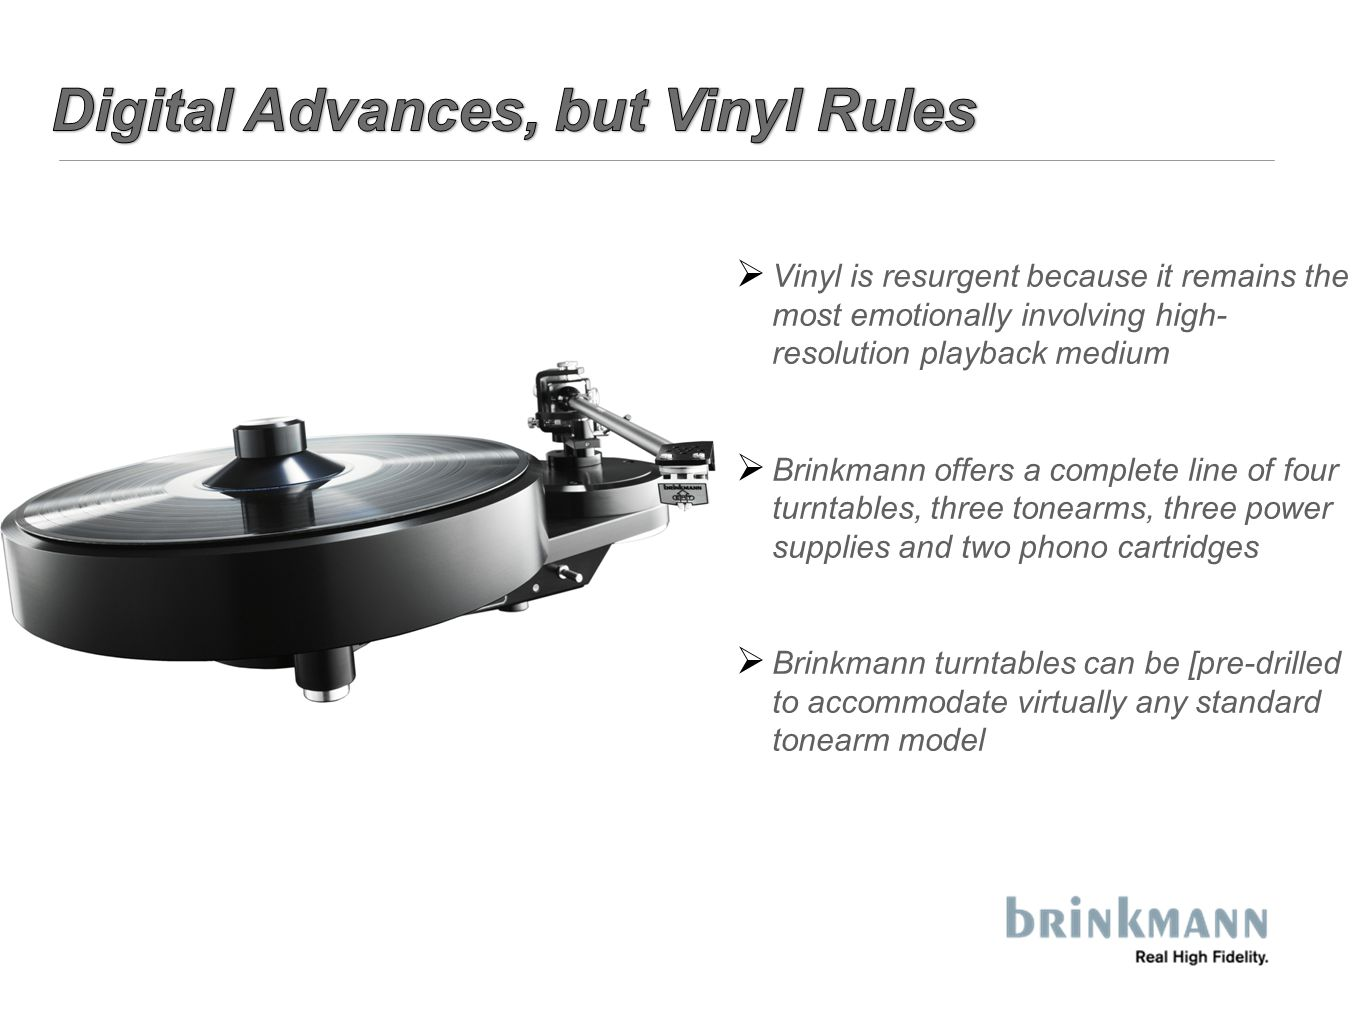  Vinyl is resurgent because it remains the most emotionally involving high- resolution playback medium  Brinkmann offers a complete line of four turntables, three tonearms, three power supplies and two phono cartridges  Brinkmann turntables can be [pre-drilled to accommodate virtually any standard tonearm model